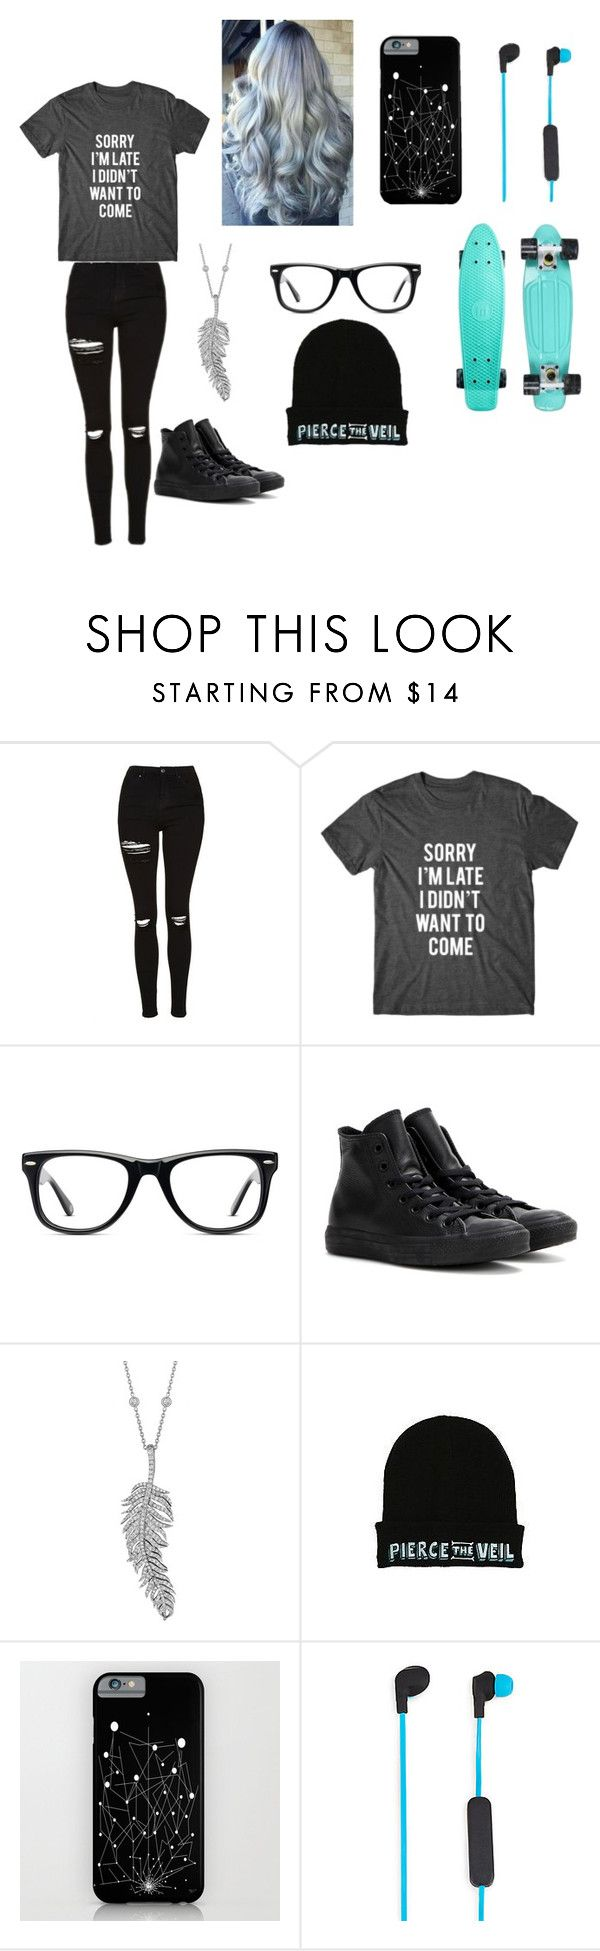 """""""The I Don't Care Look"""" by arly-lopez on Polyvore featuring Topshop, Muse, Converse, Penny Preville and Merkury Innovations"""